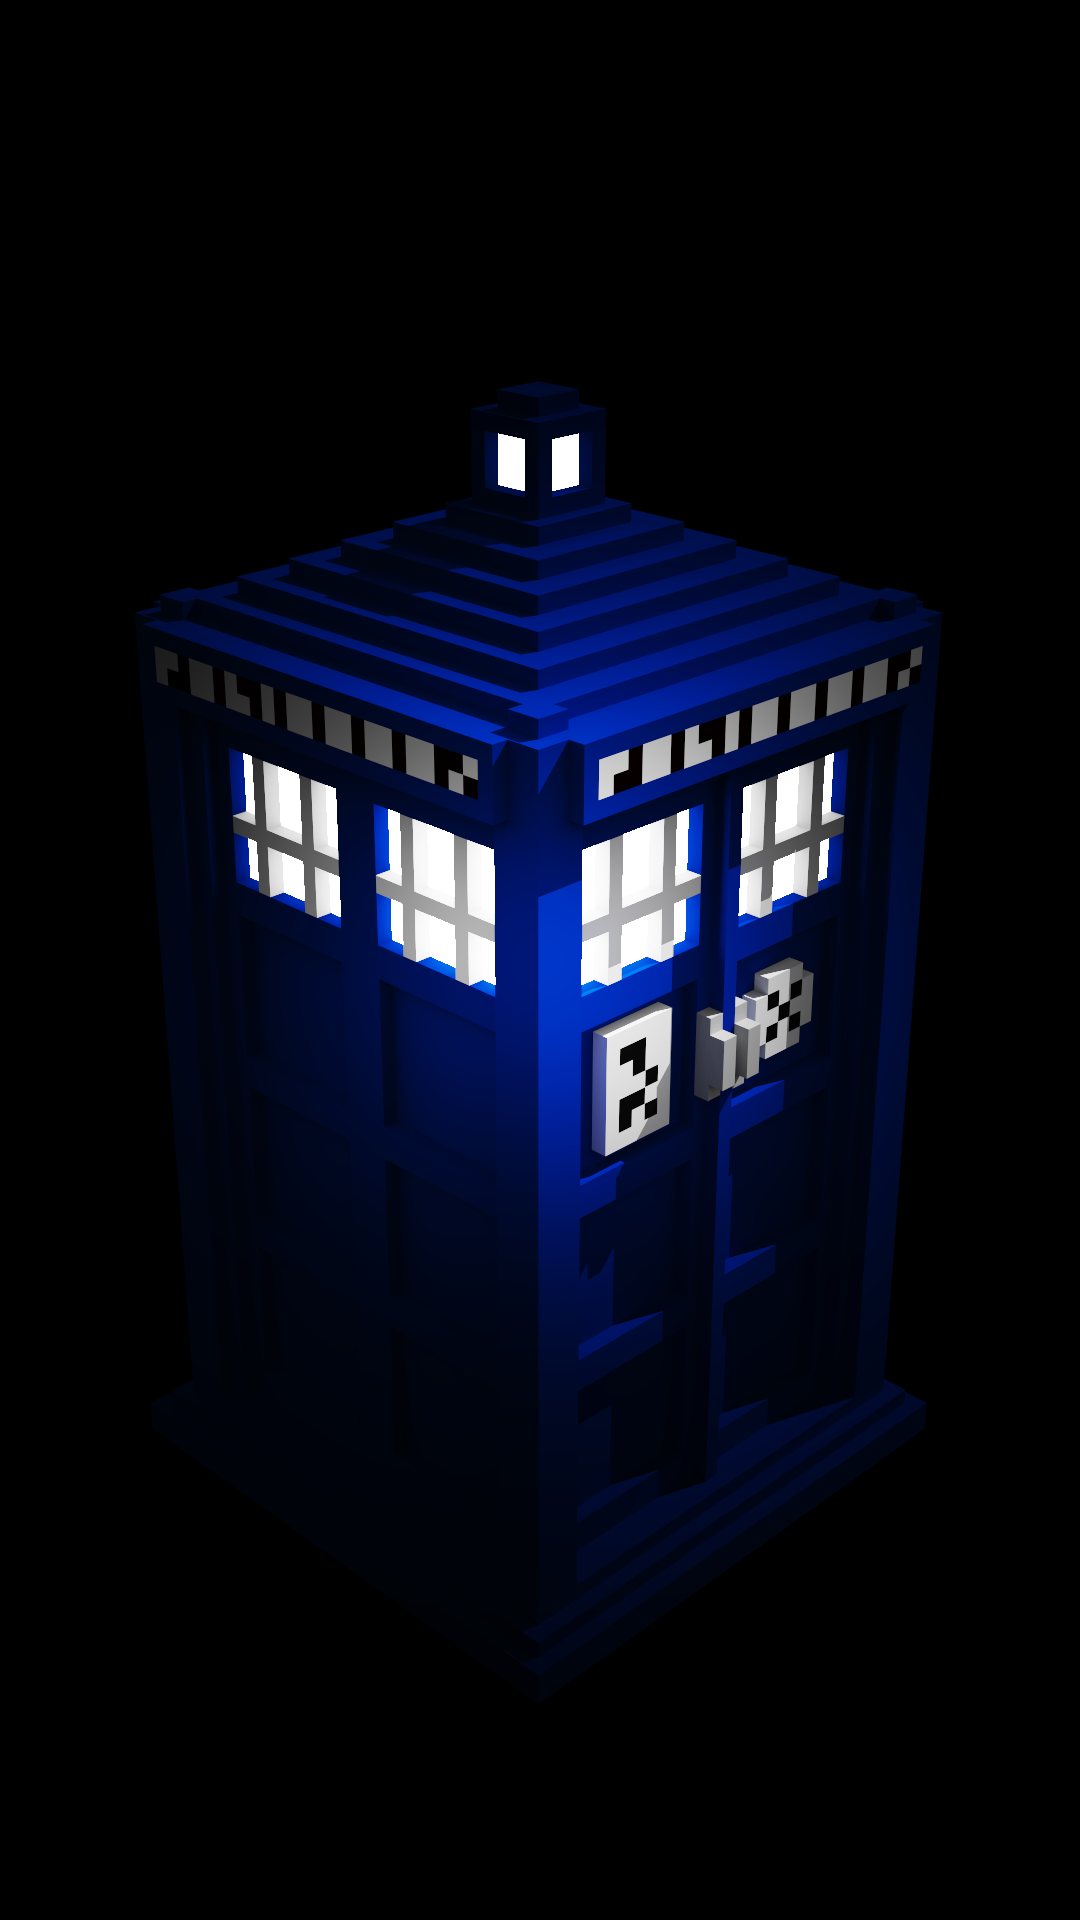 1080x1920 Pin by Anas Fawad on Wallpaper in 2019 | Doctor who ...